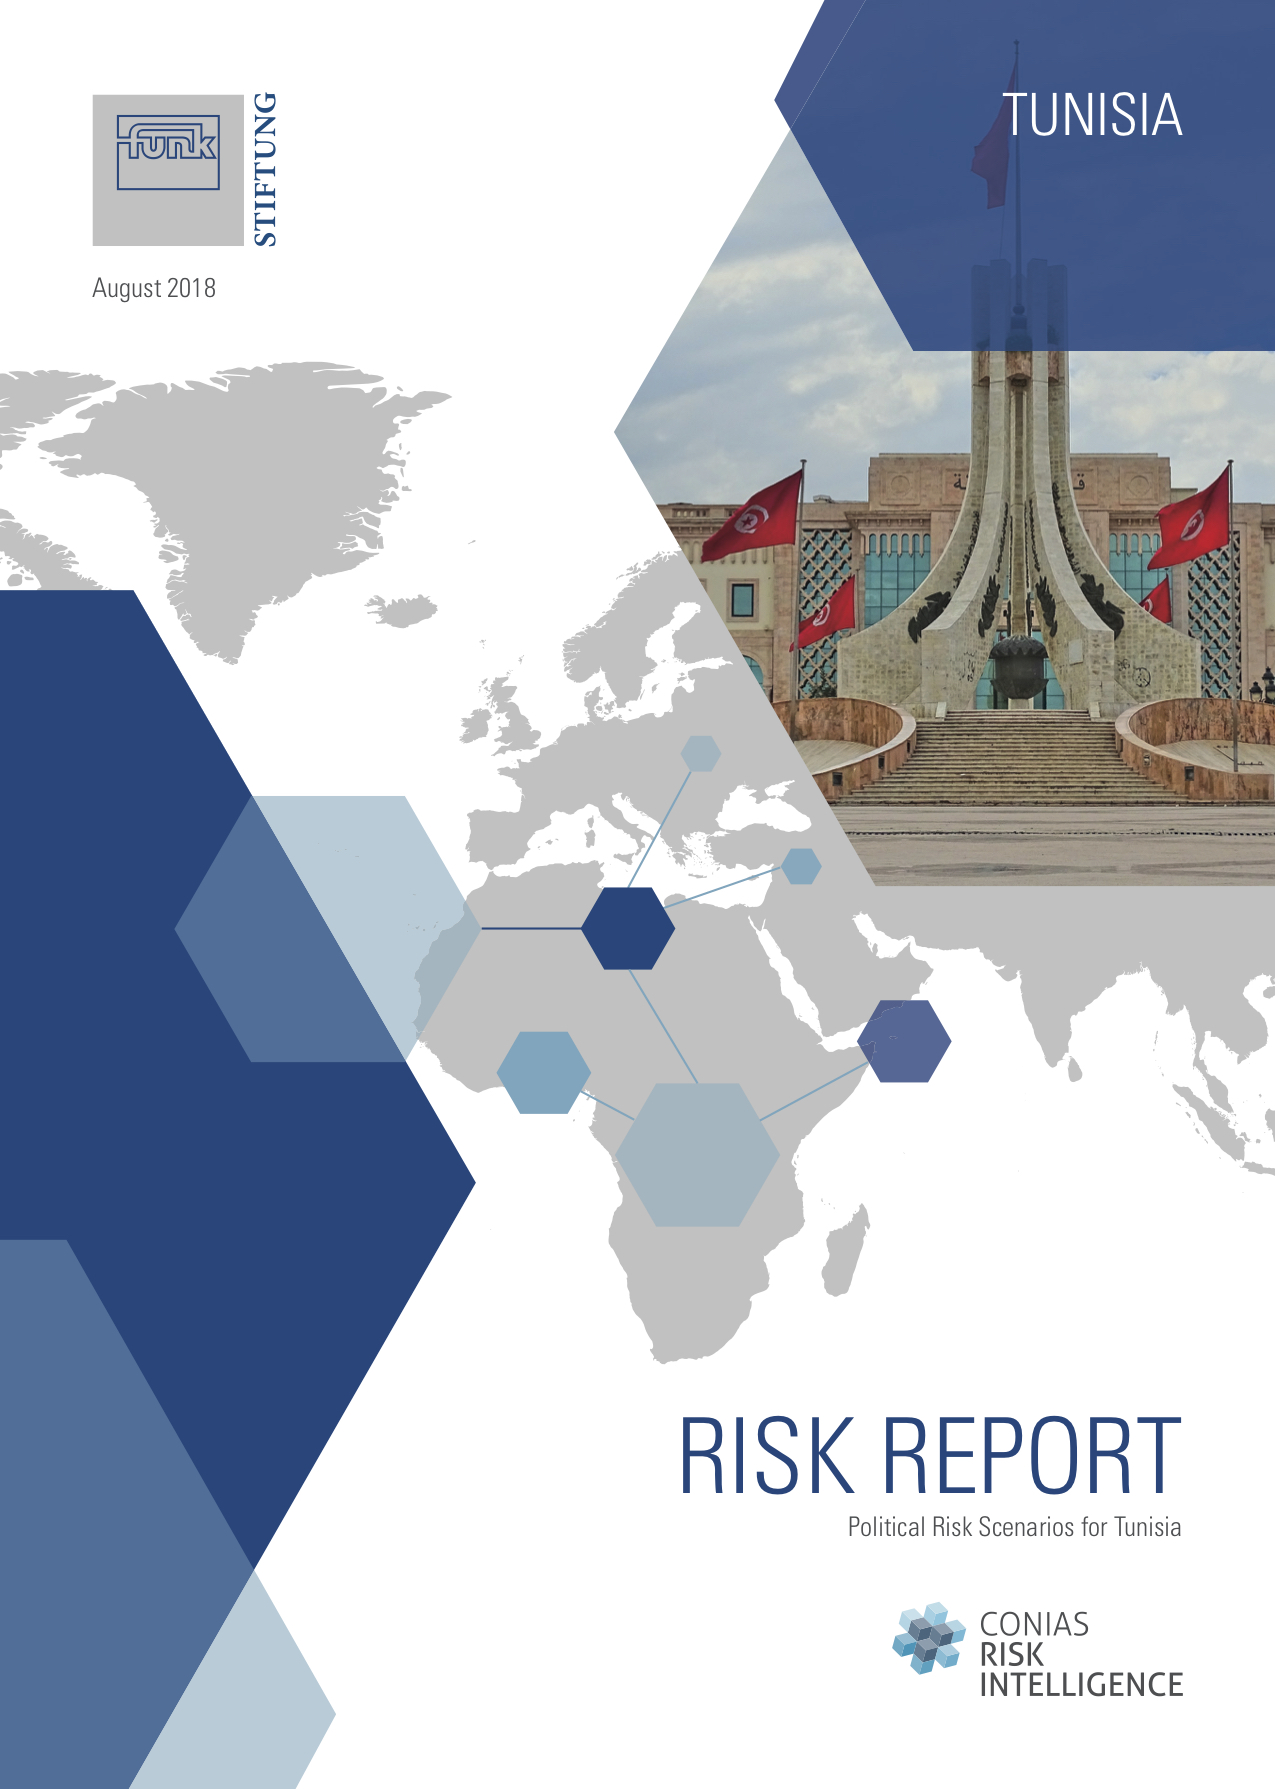 Risk Report Tunisia